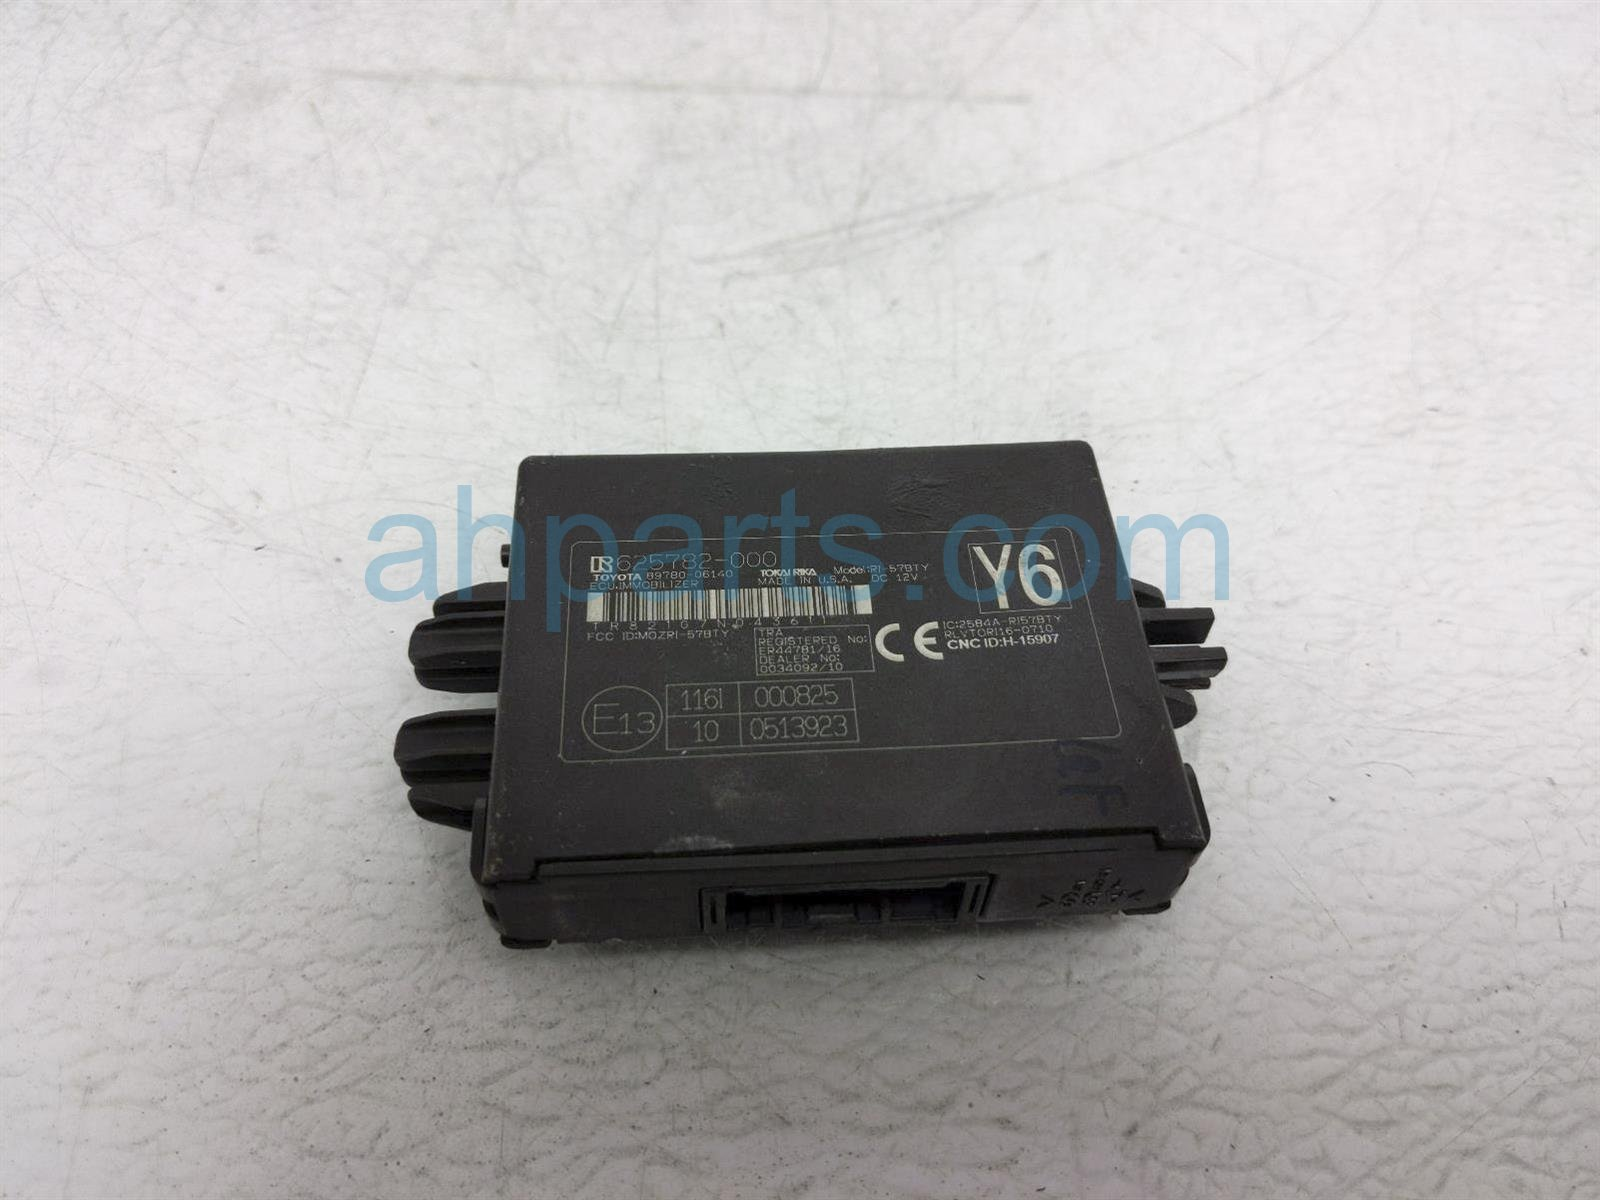 2018 Toyota Camry Key Transponder Computer Assy 89780 06140 Replacement